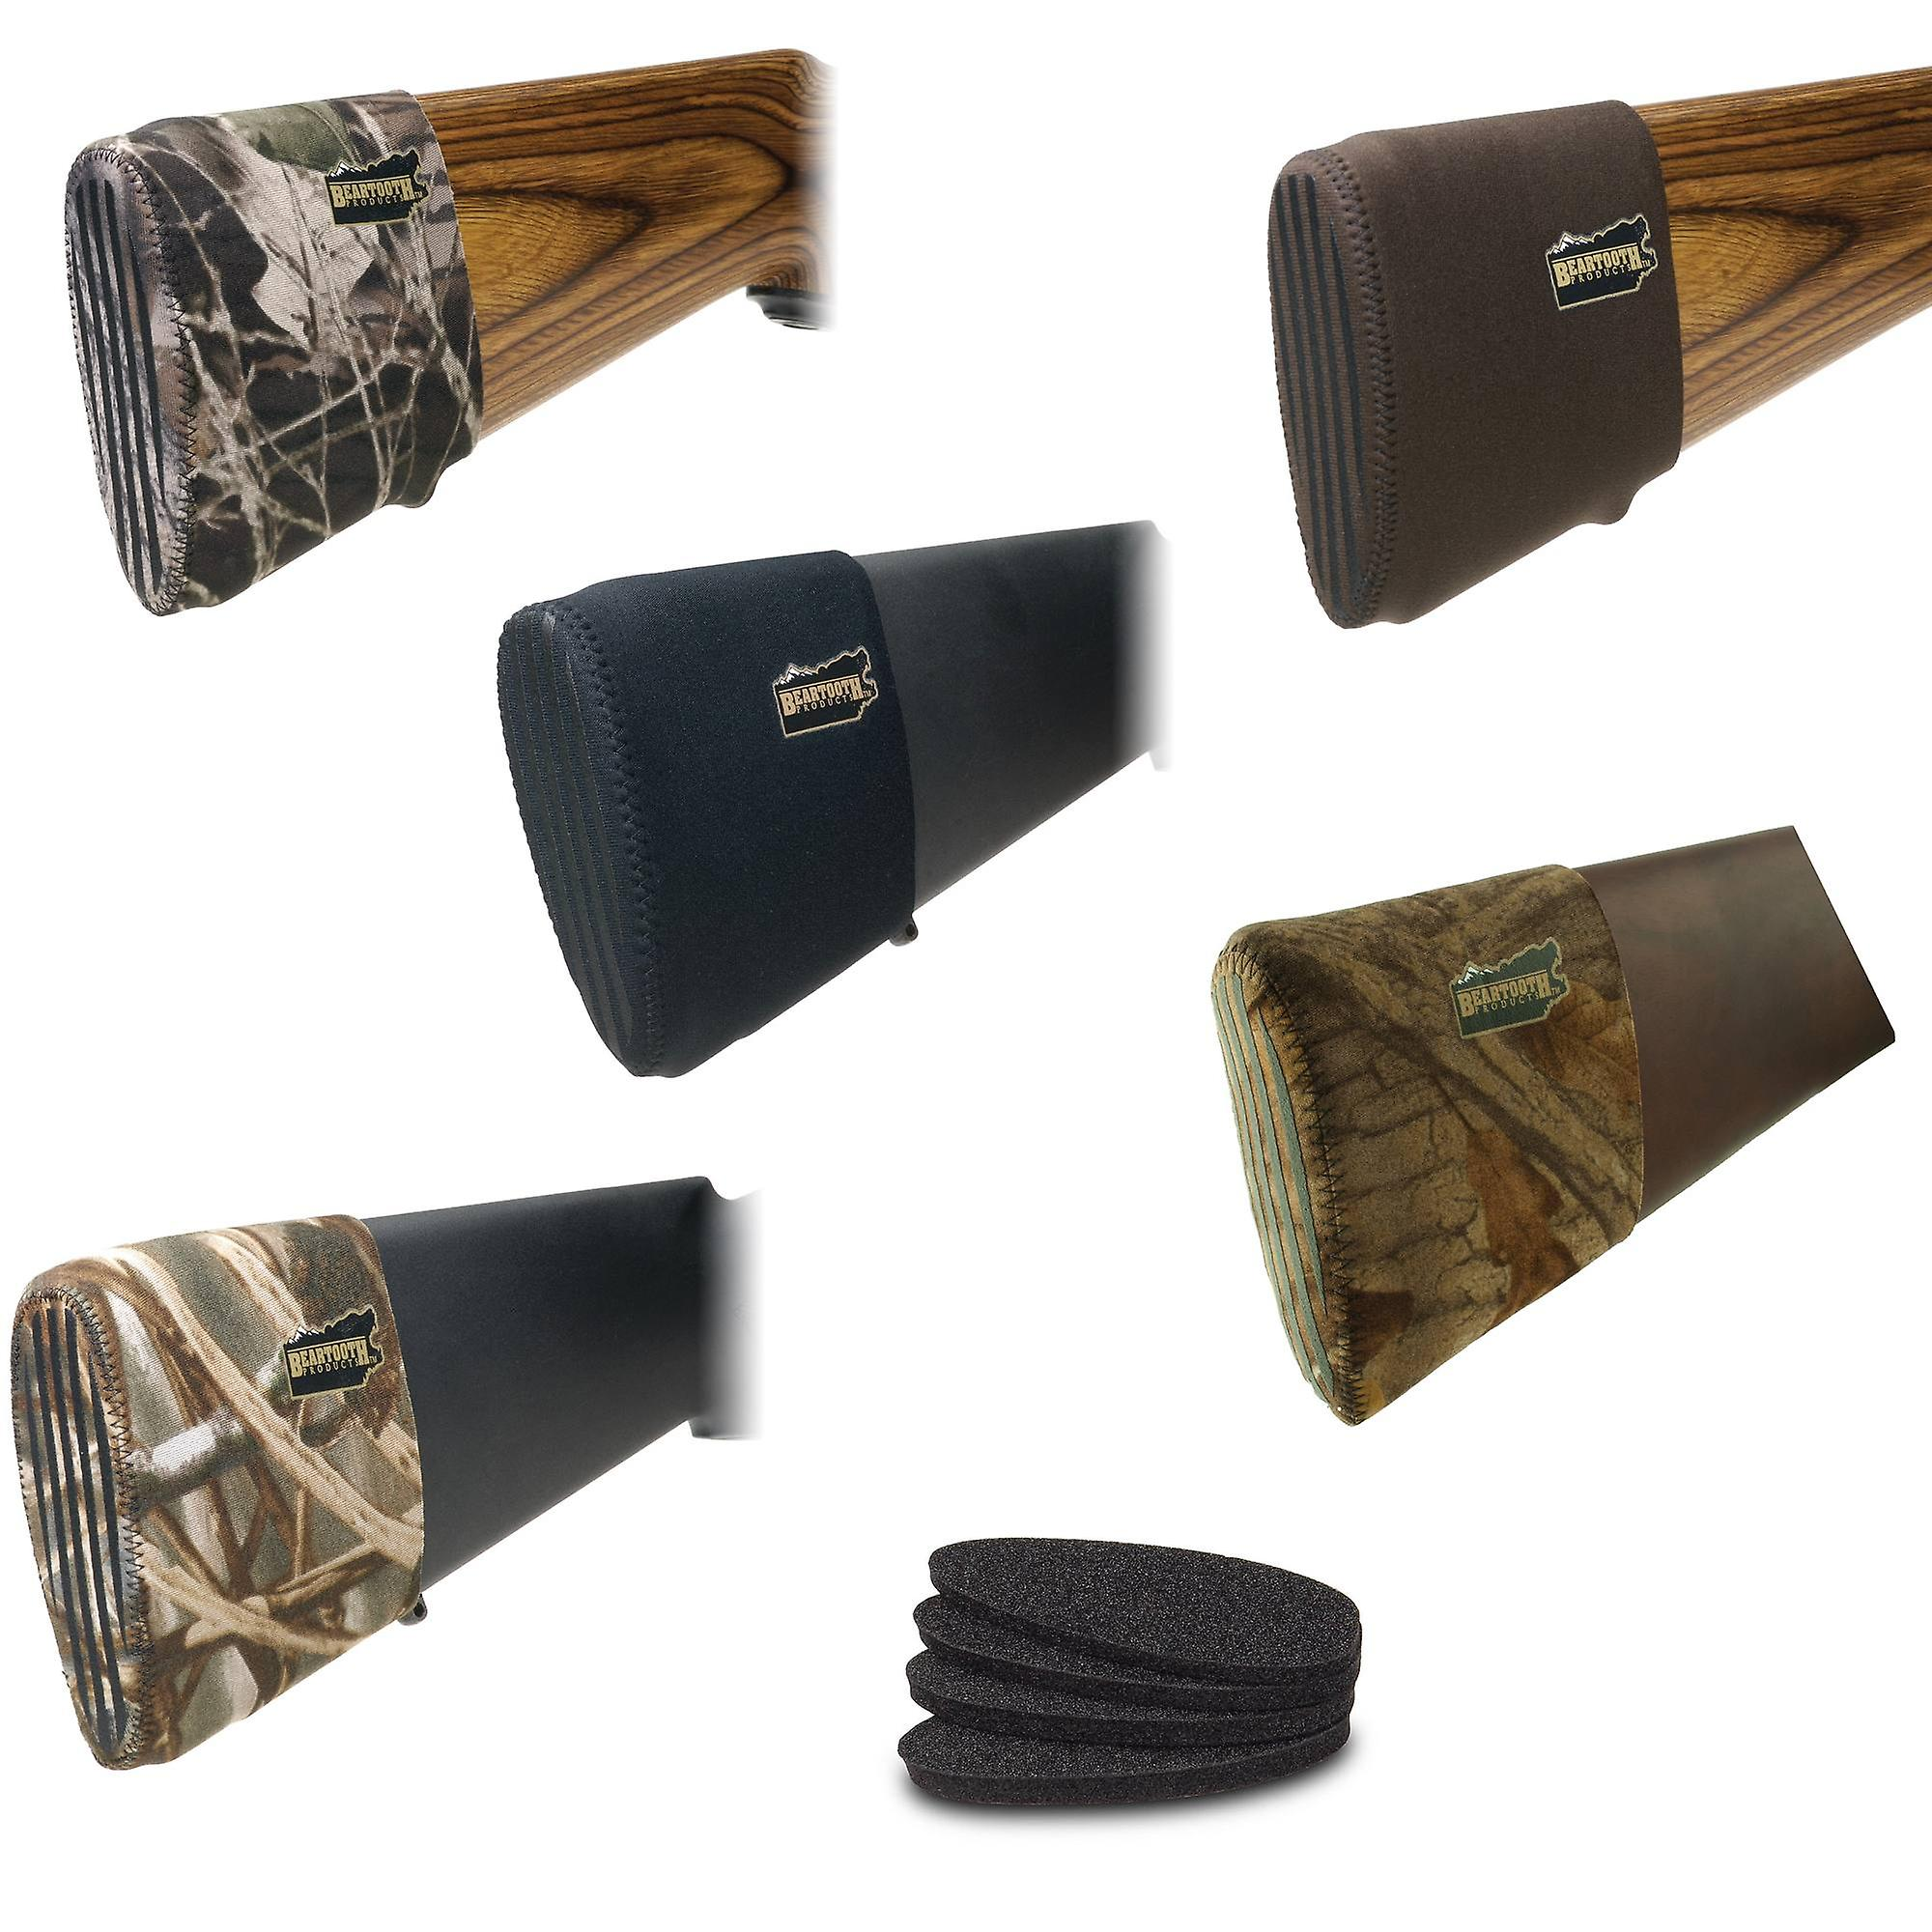 Beartooth Recoil Pad kit - neoprene gun stock pad with inserts eliminate fatigue